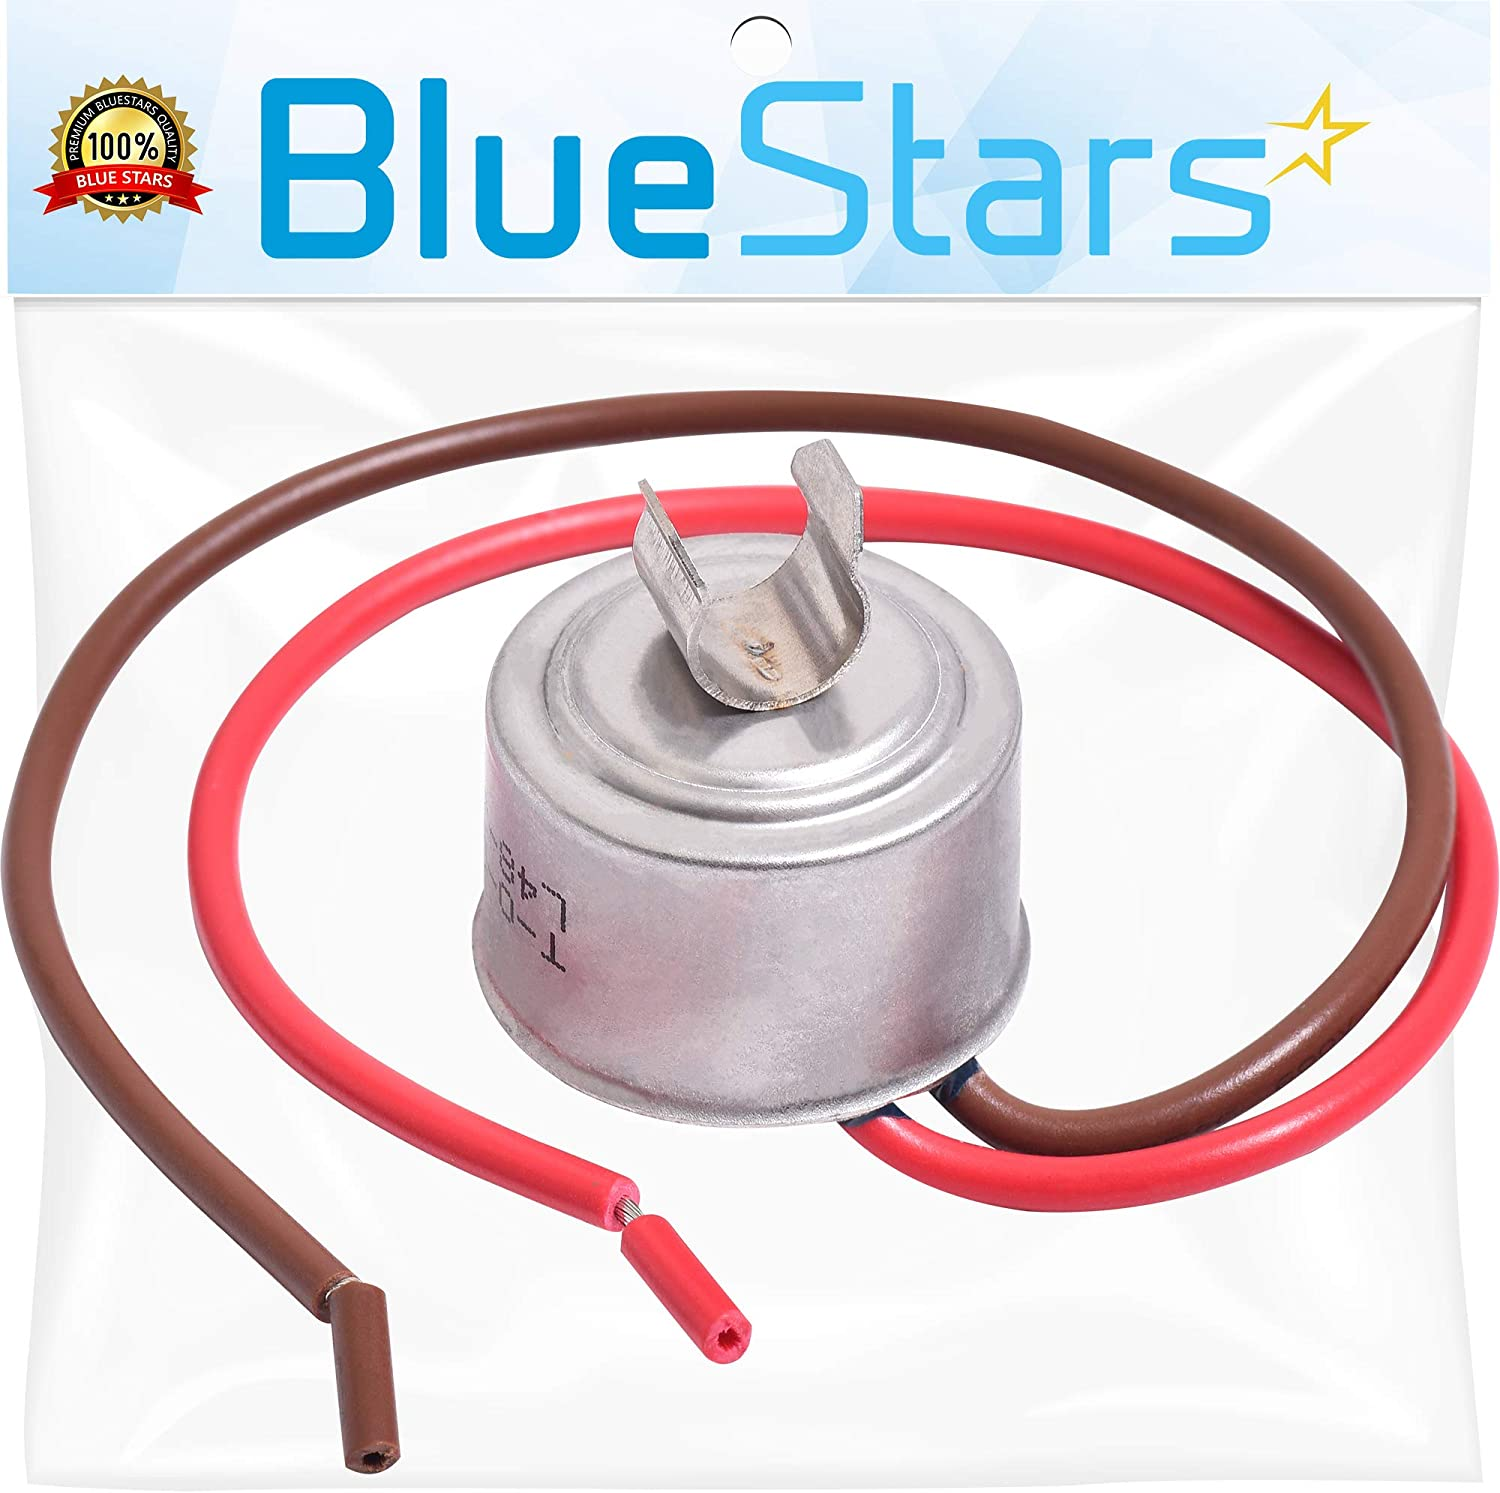 4387503 Refrigerator Bimetal Defrost Thermostat Replacement Part by Blue Stars - Exact Fit for Whirlpool & Kenmore Refrigerators - Replaces WP4387503 343917 61002113 PS11742474 AP6009317